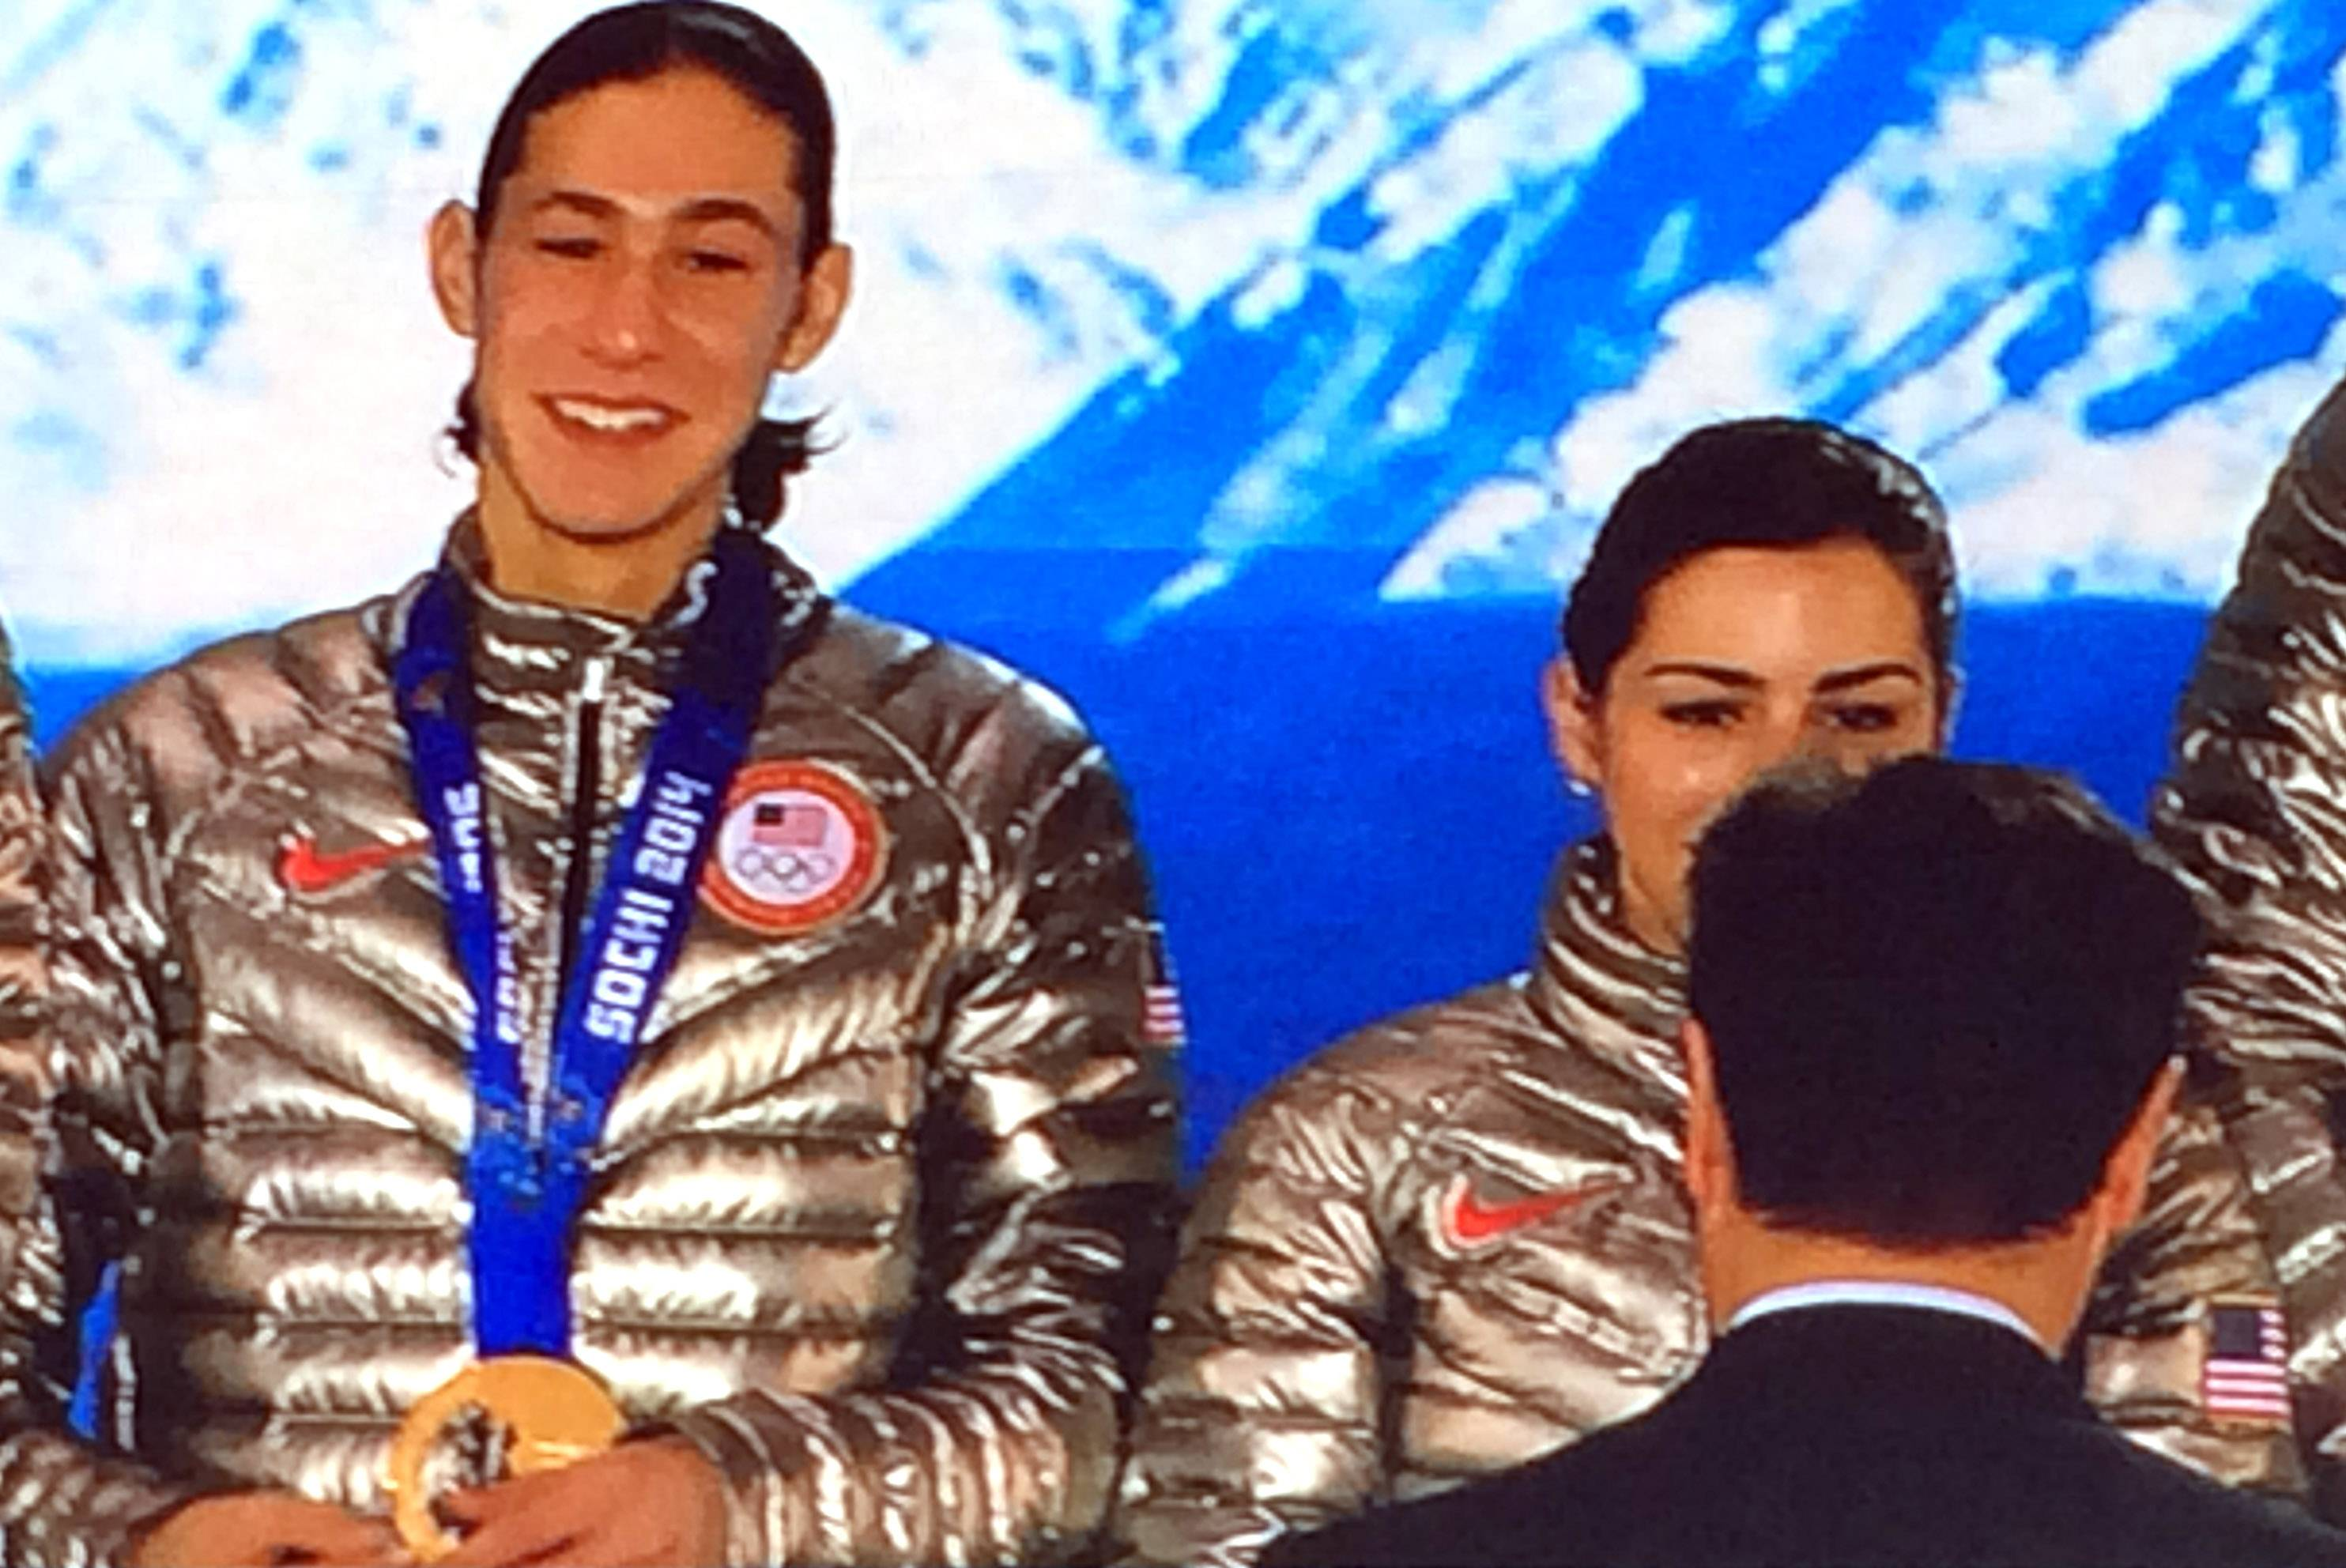 A photo of a video monitor shows Highland Park skater Jason Brown receiving his bronze medal.